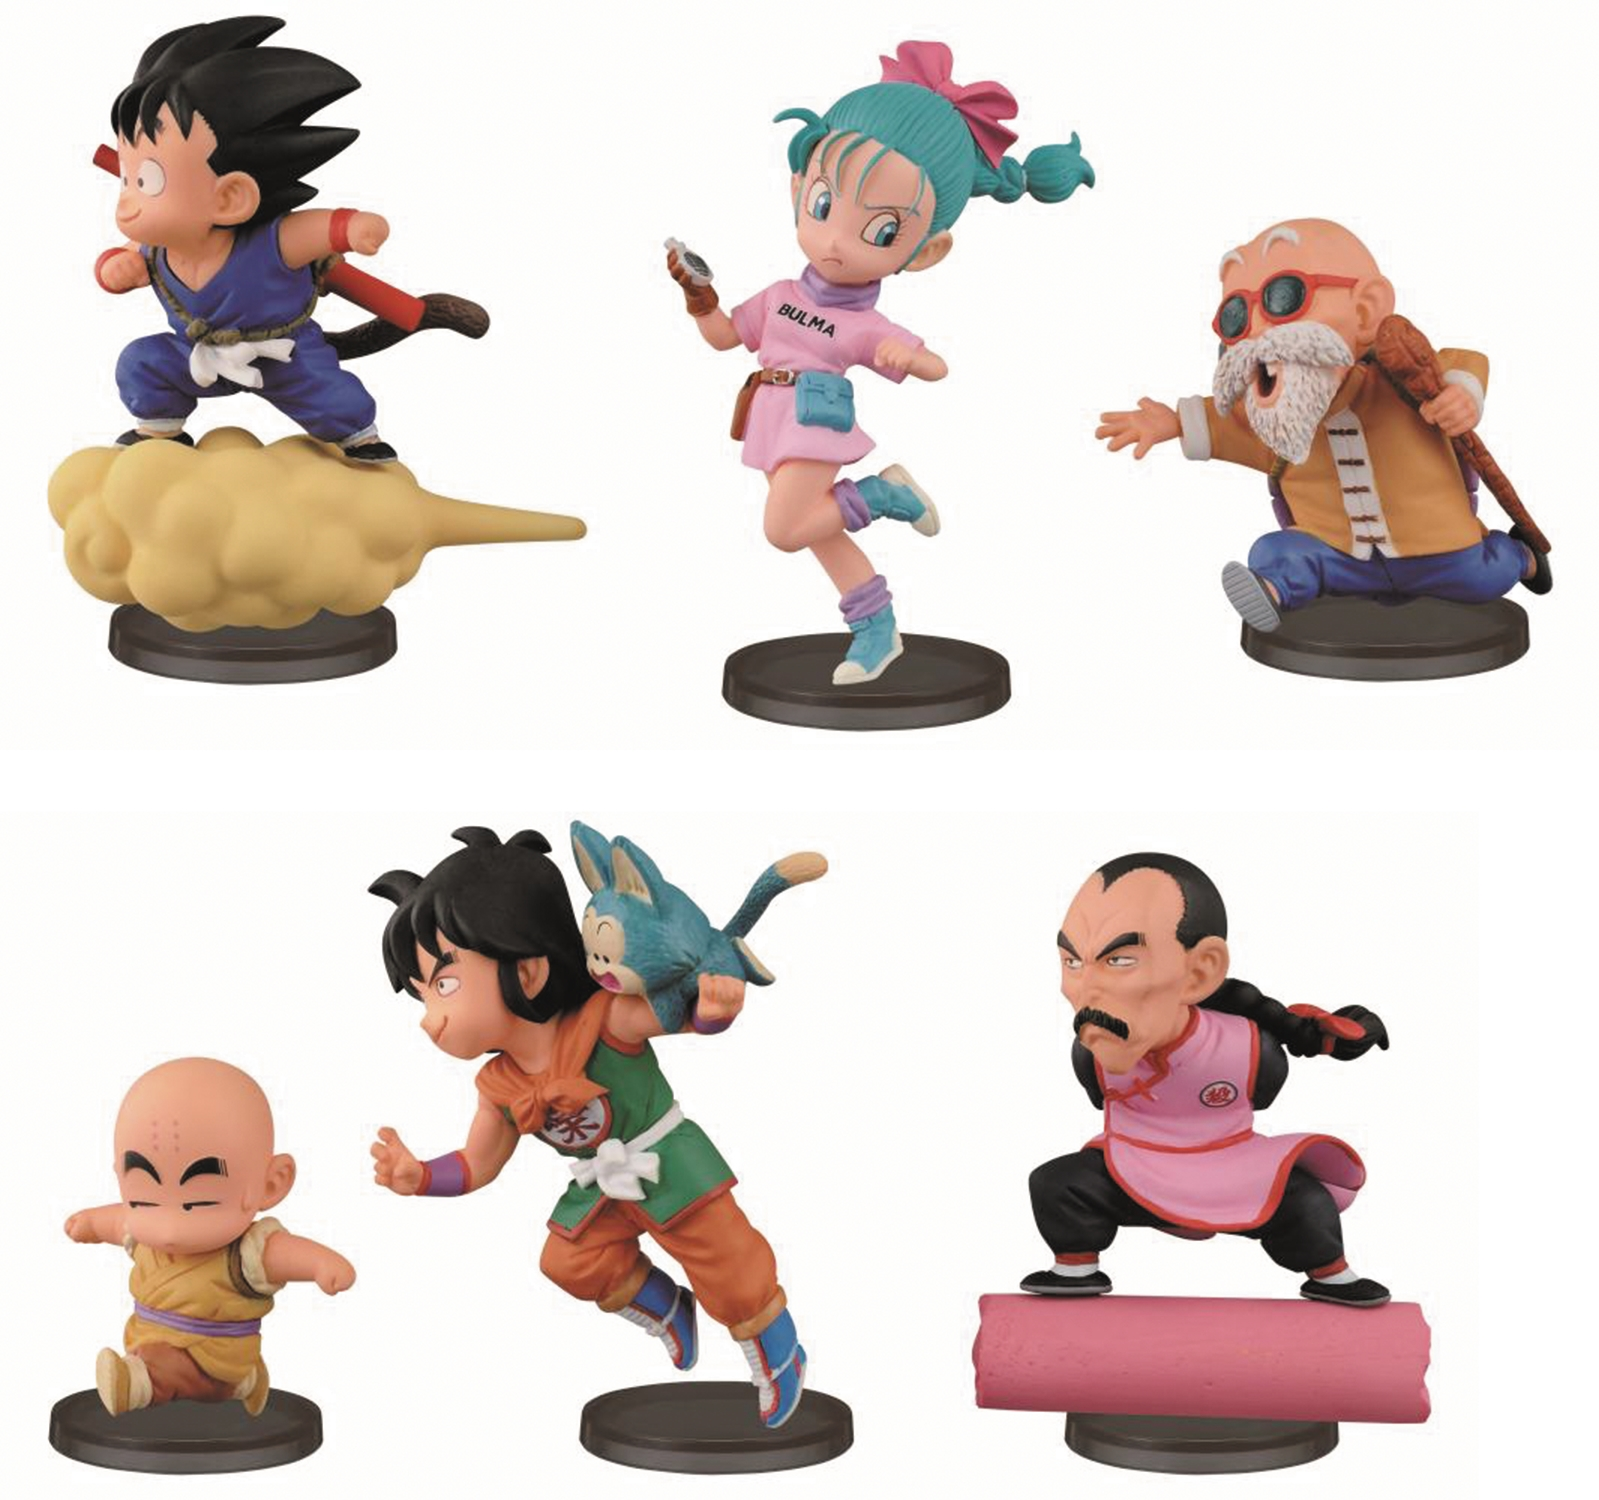 Dragonball Super World Collectible Figure 30th Anniversary Series #1: Yamcha